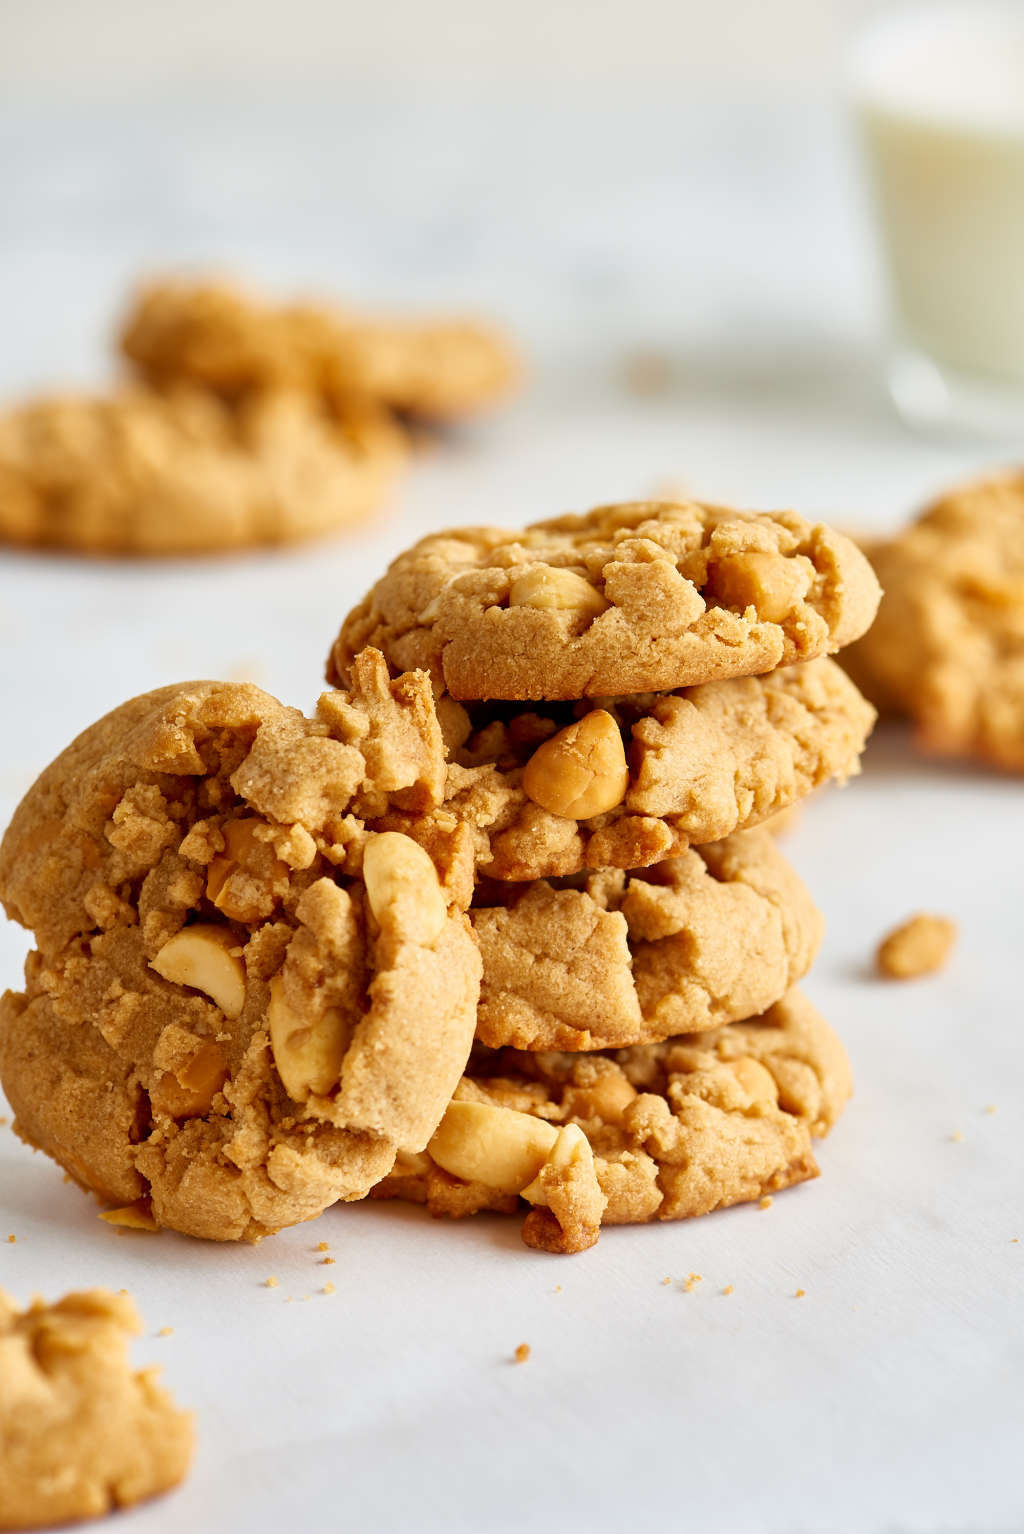 This Is the Only Recipe for Peanut Butter Cookies You Need